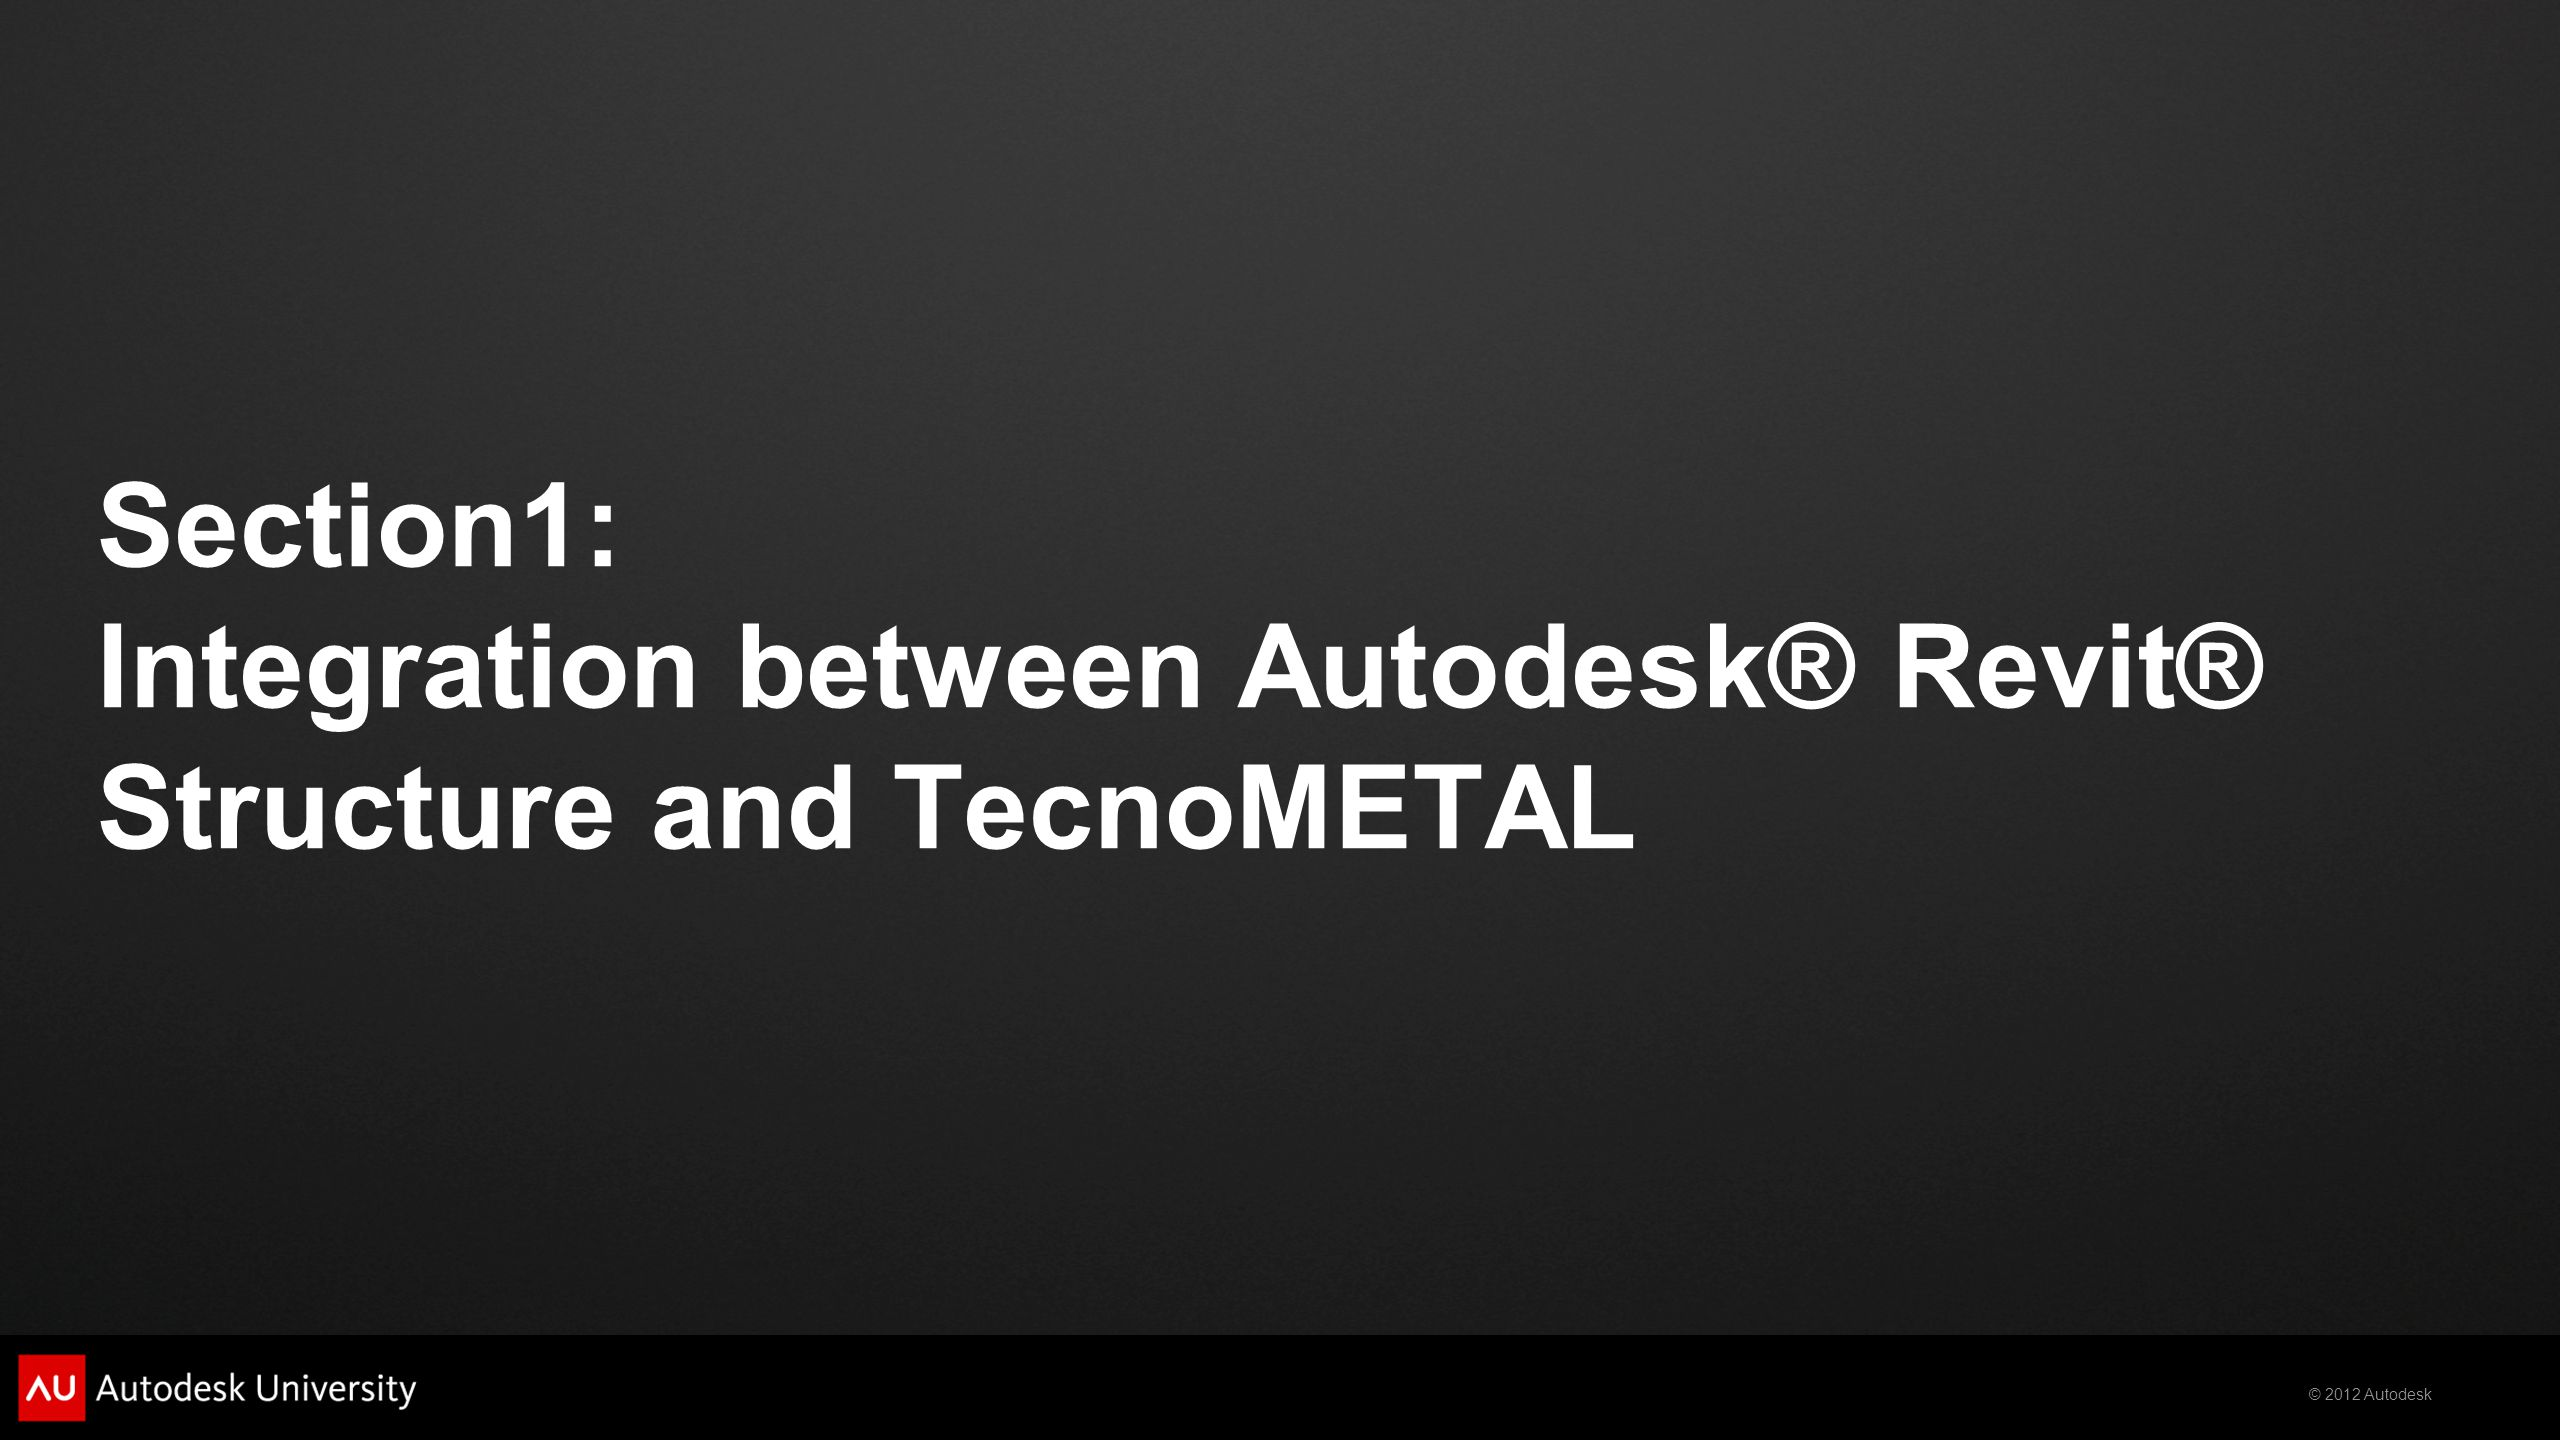 Section1: Integration between Autodesk® Revit® Structure and TecnoMETAL